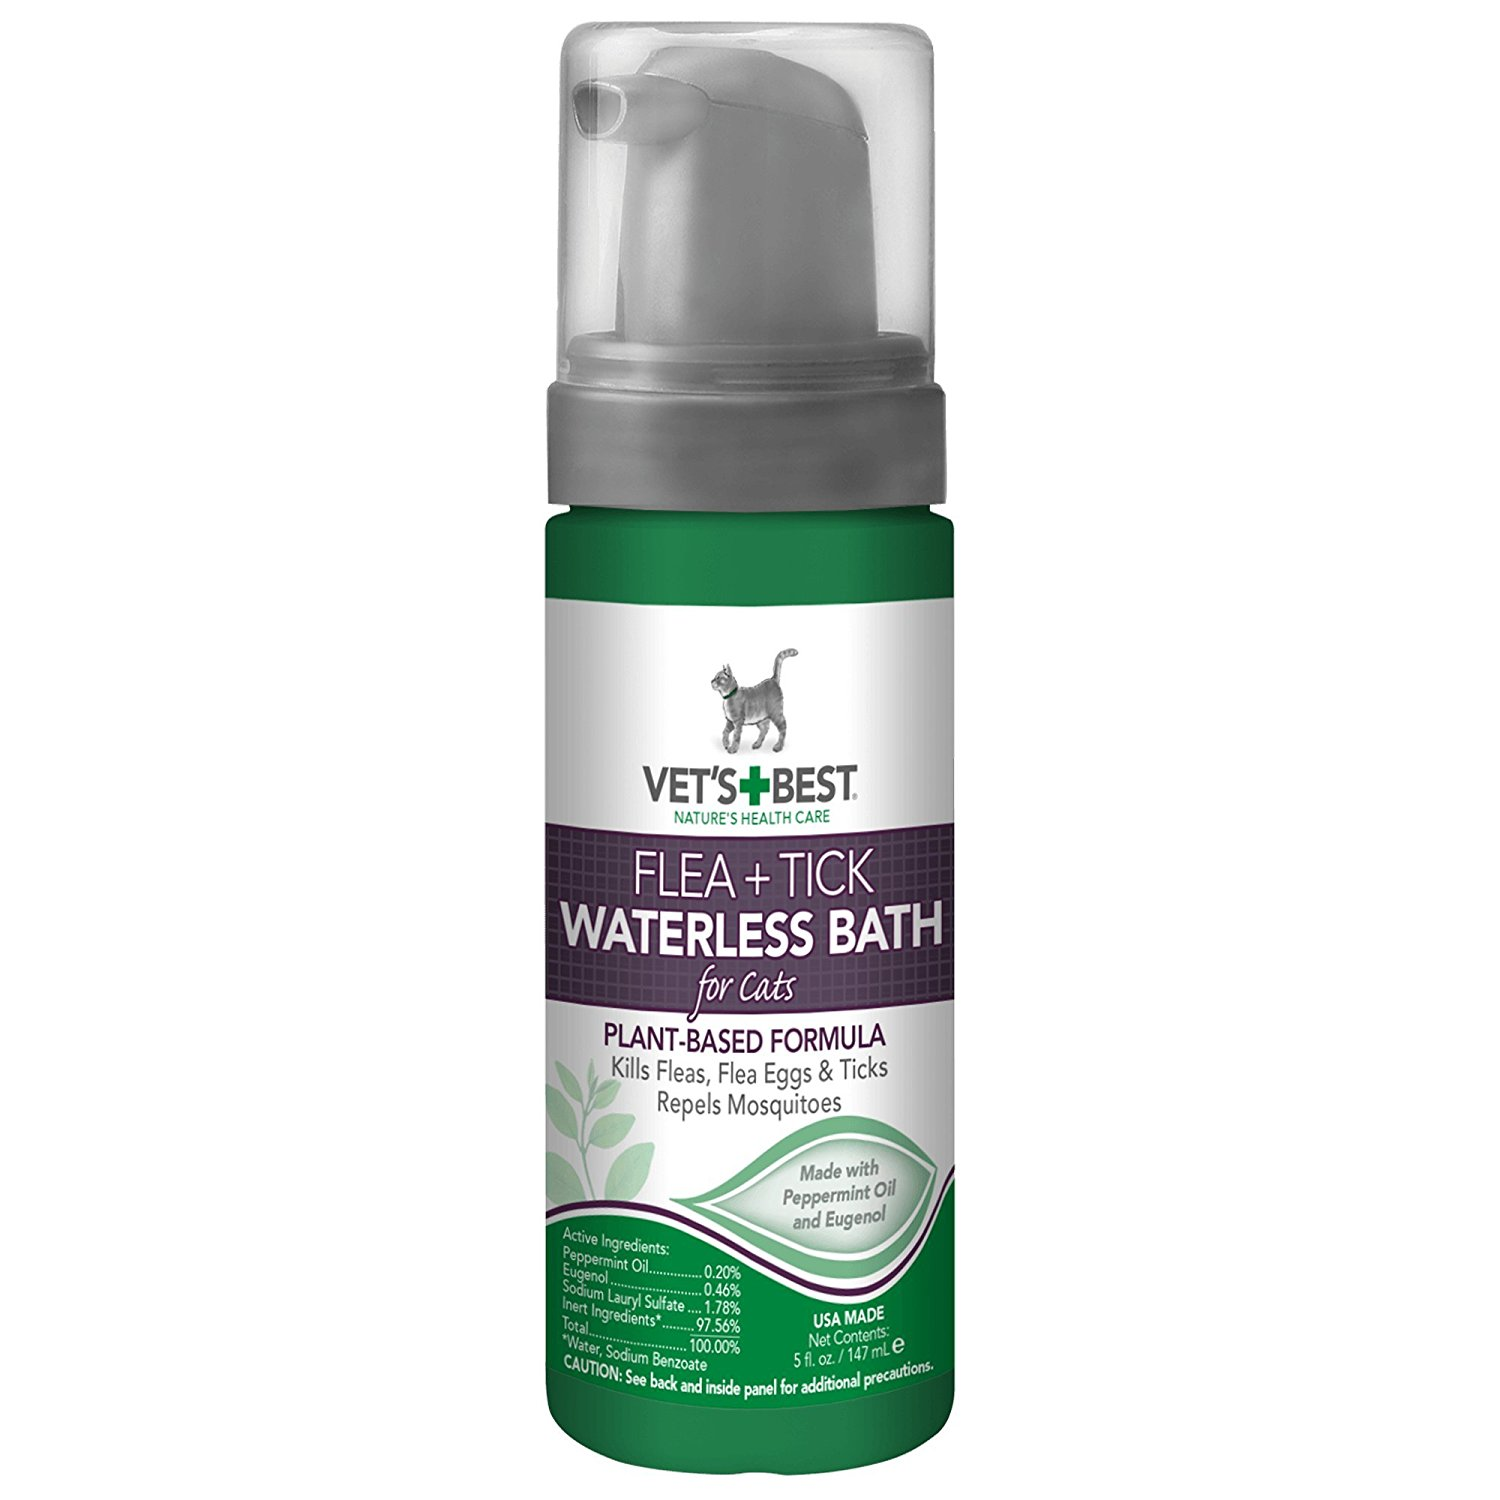 Vet's Best Natural Flea and Tick Waterless Bath Foam for Cats